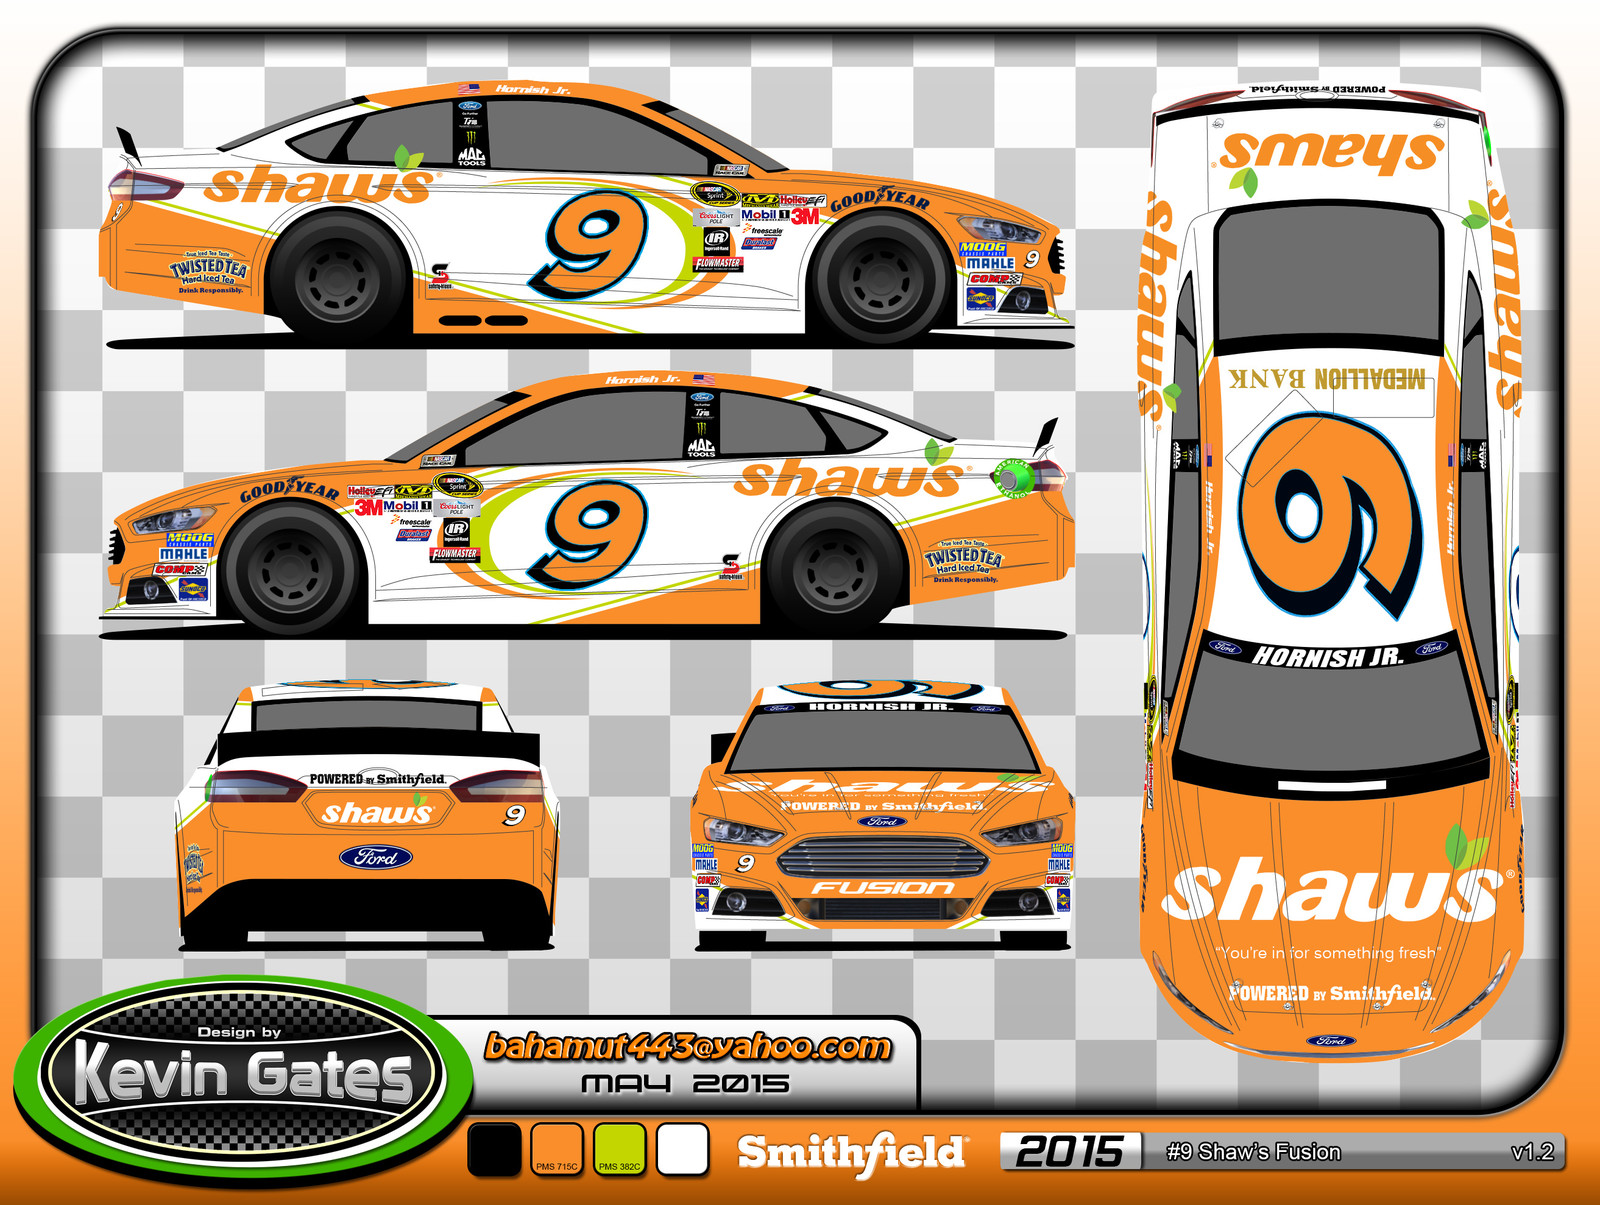 Original vector art of the 2015 #9 Shaw's Supermarkets Ford Fusion